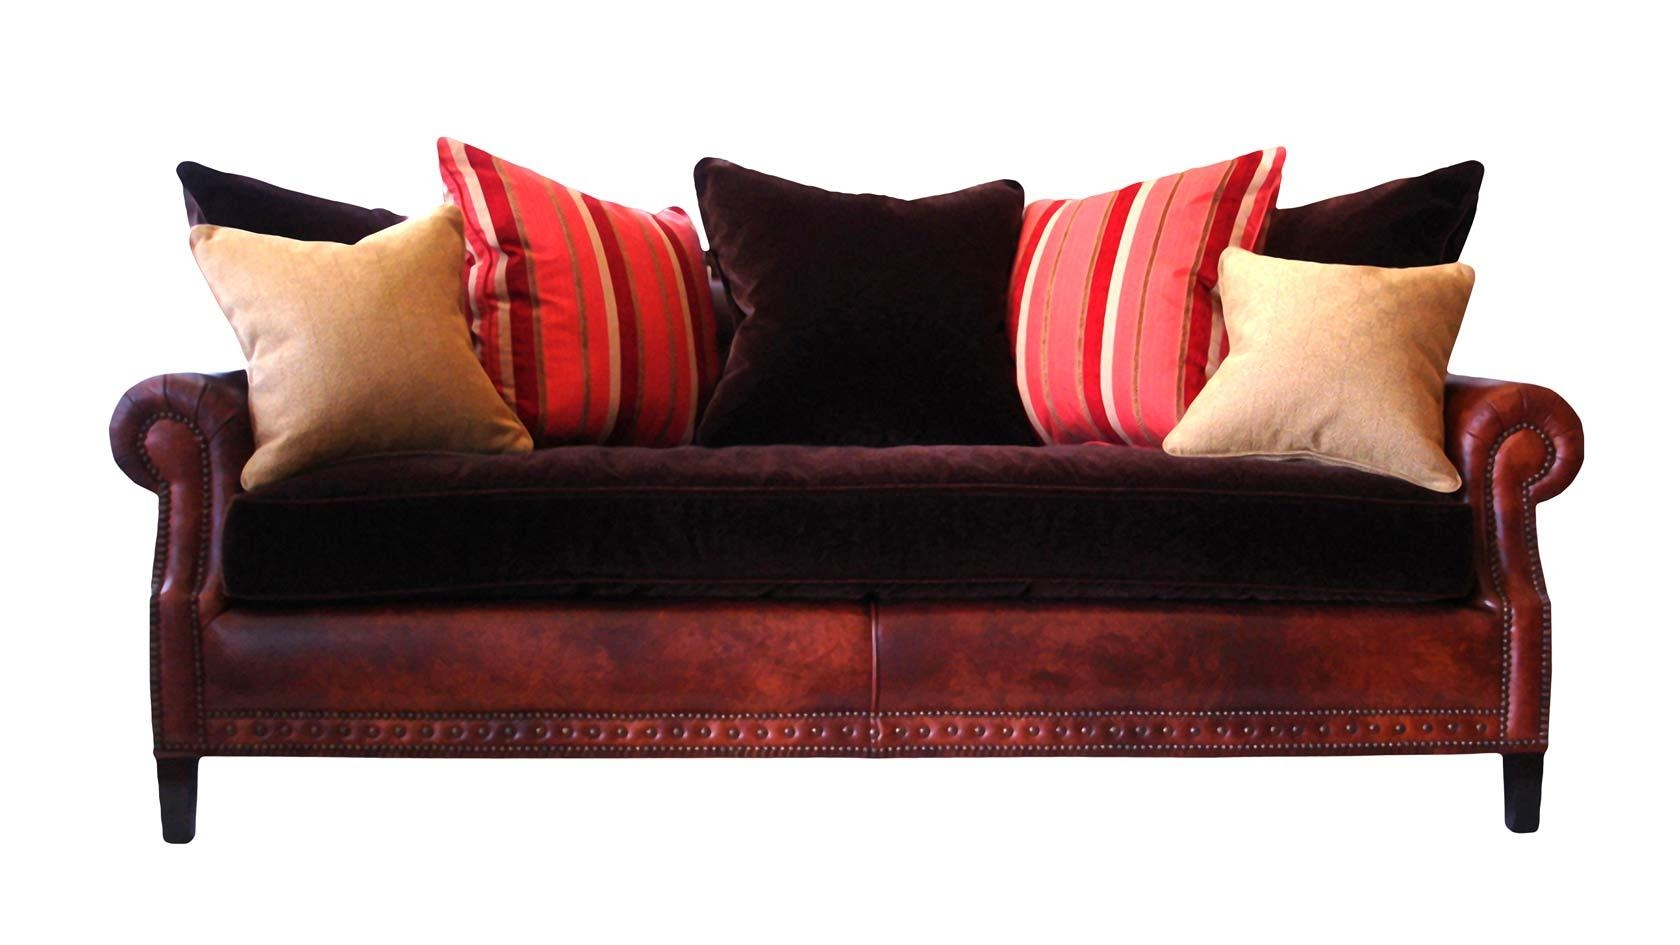 Loose Pillow Back Sofa With Design Image 22608 | Kengire Pertaining To Loose Pillow Back Sofas (Image 9 of 20)